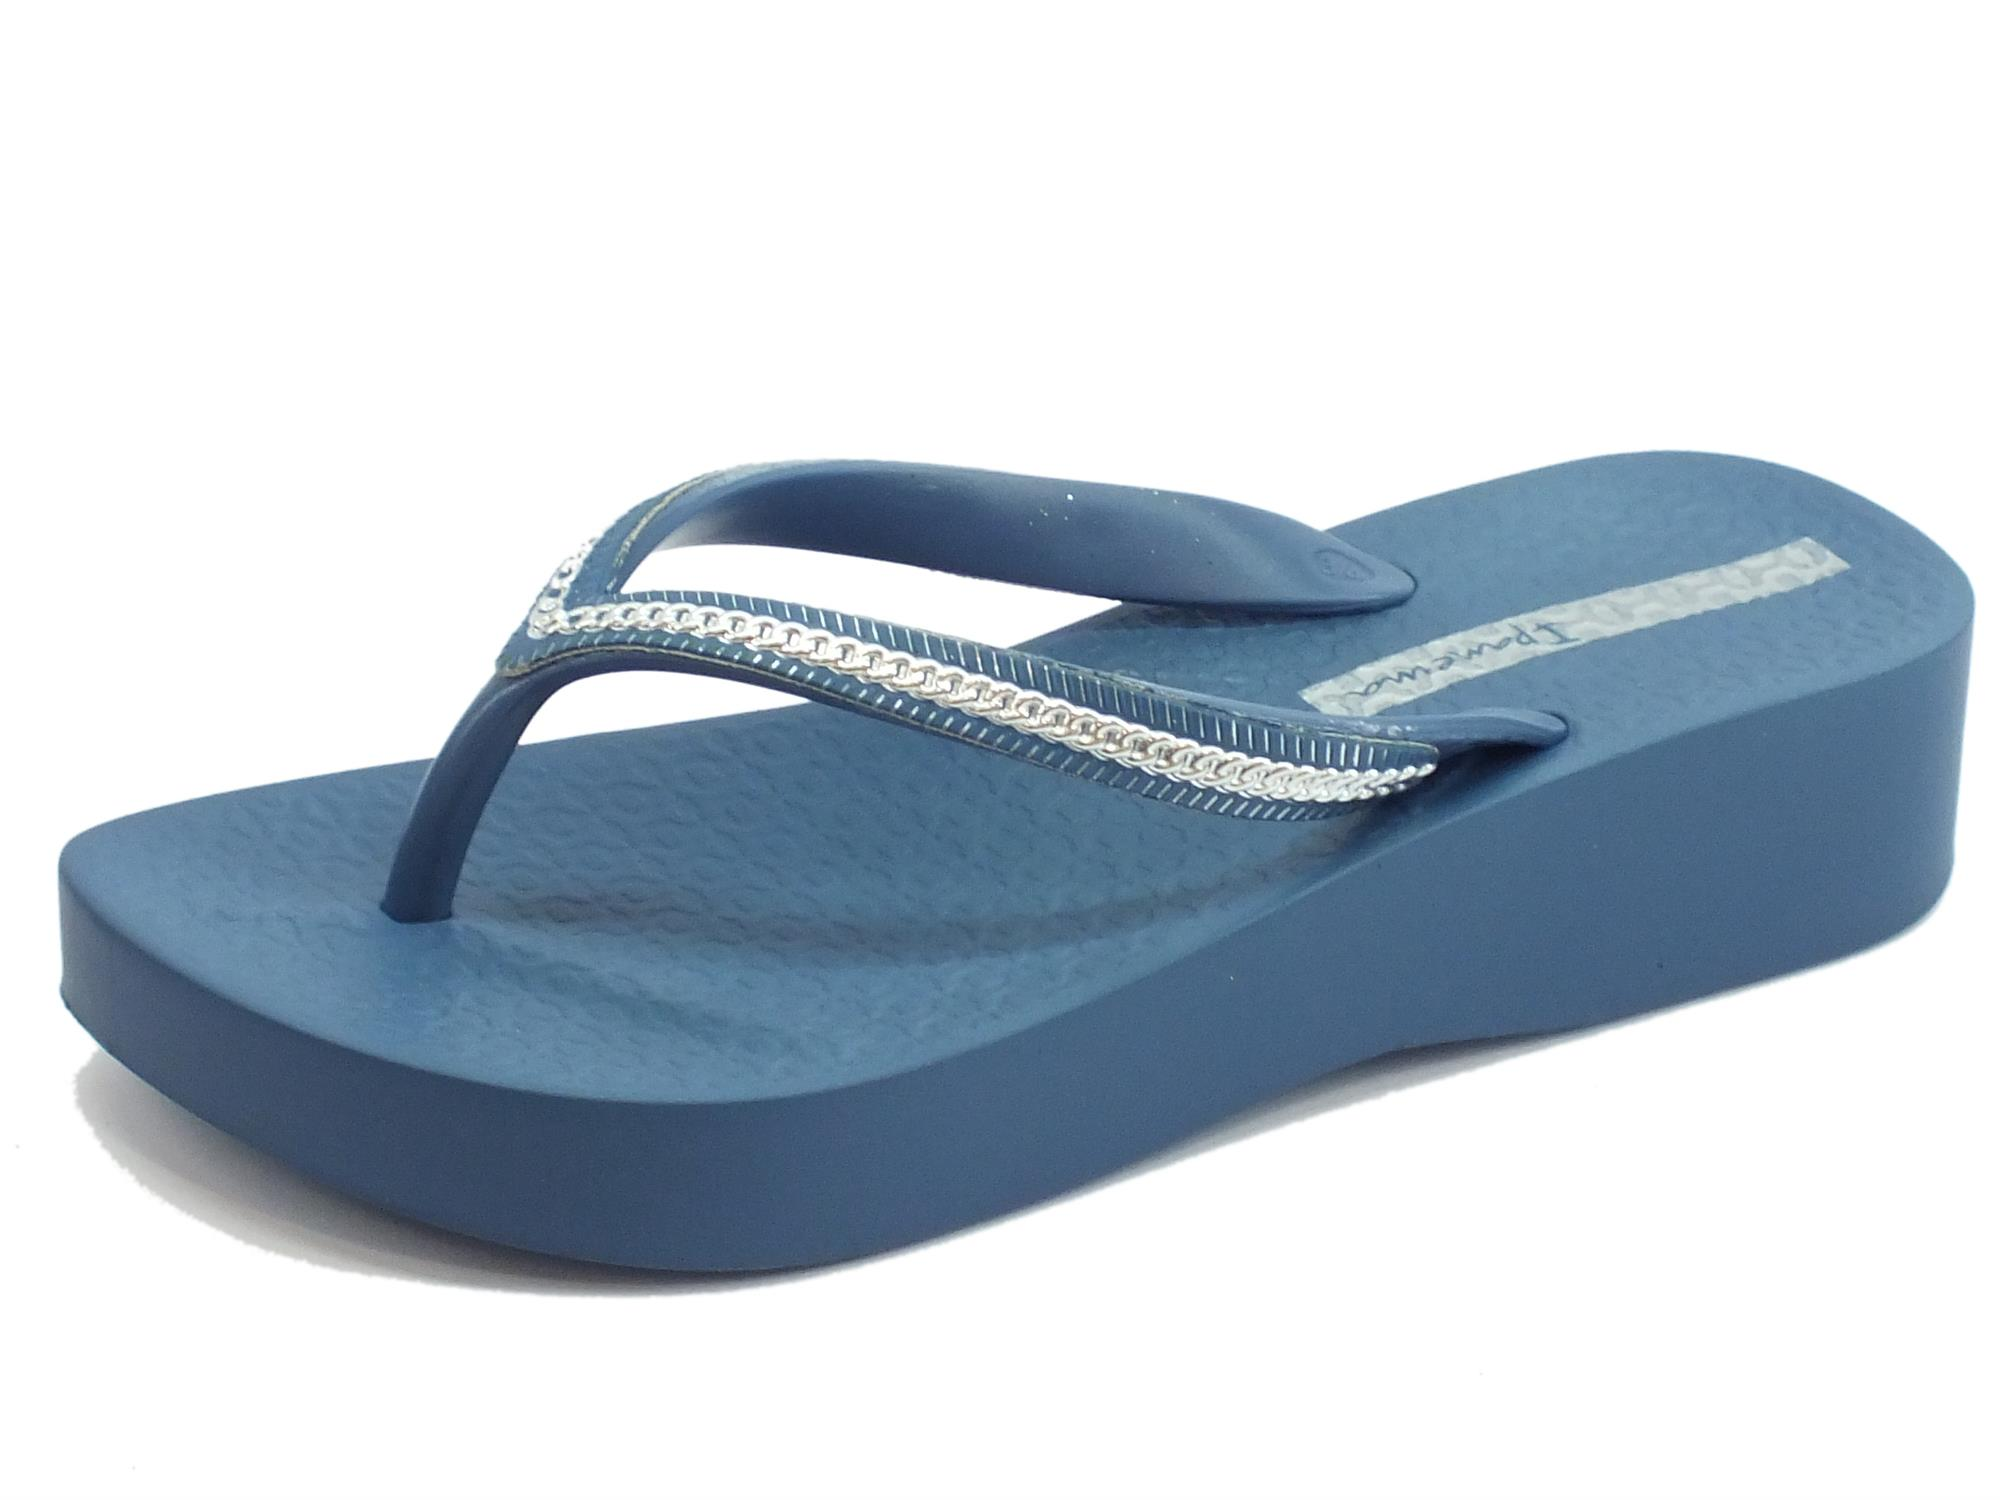 save off 781b4 78556 Infradito Ipanema Mesh III per donna in caucciù blu argento zeppa media